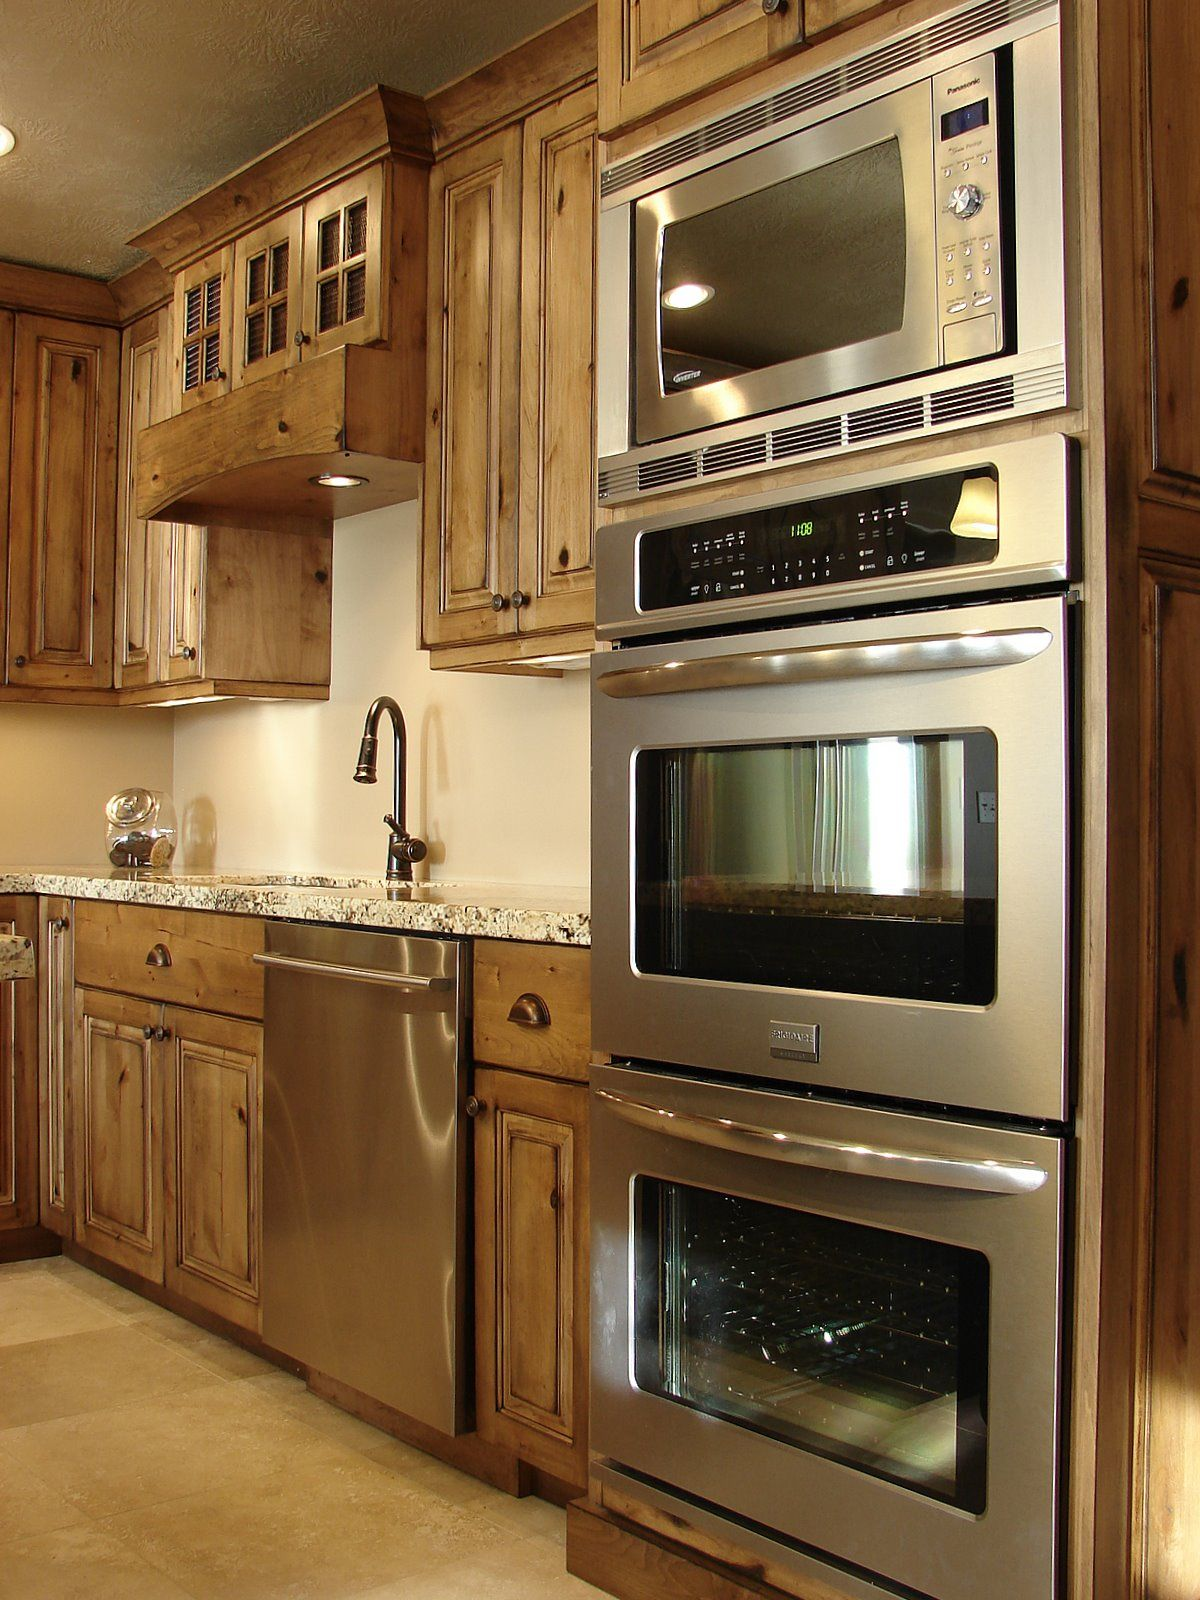 Lec Cabinets Rustic Knotty Alder Cabinets Alder Kitchen Cabinets Hickory Kitchen Cabinets Double Oven Kitchen